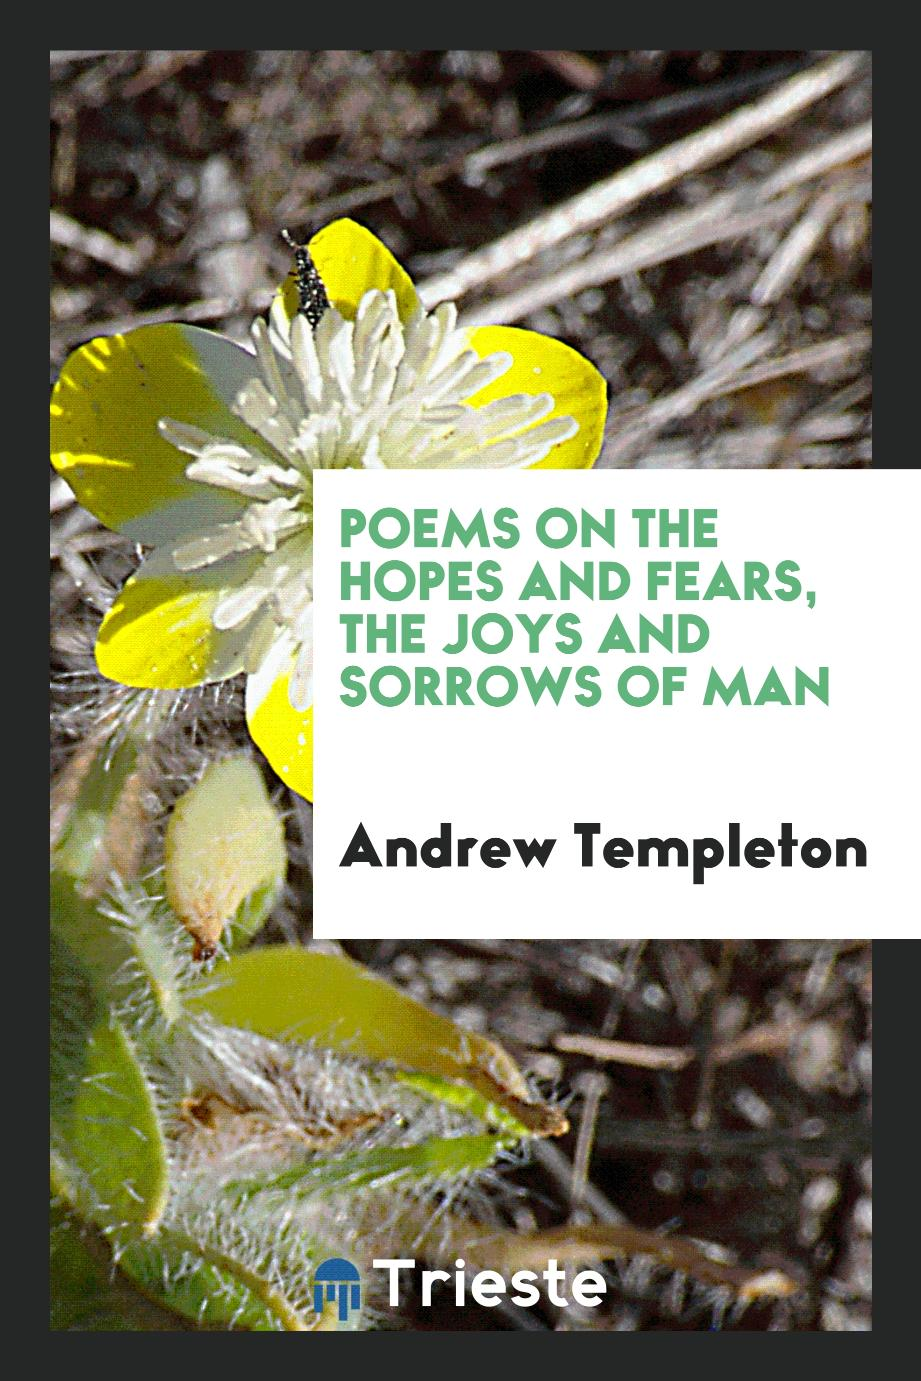 Poems on the Hopes and Fears, the Joys and Sorrows of Man